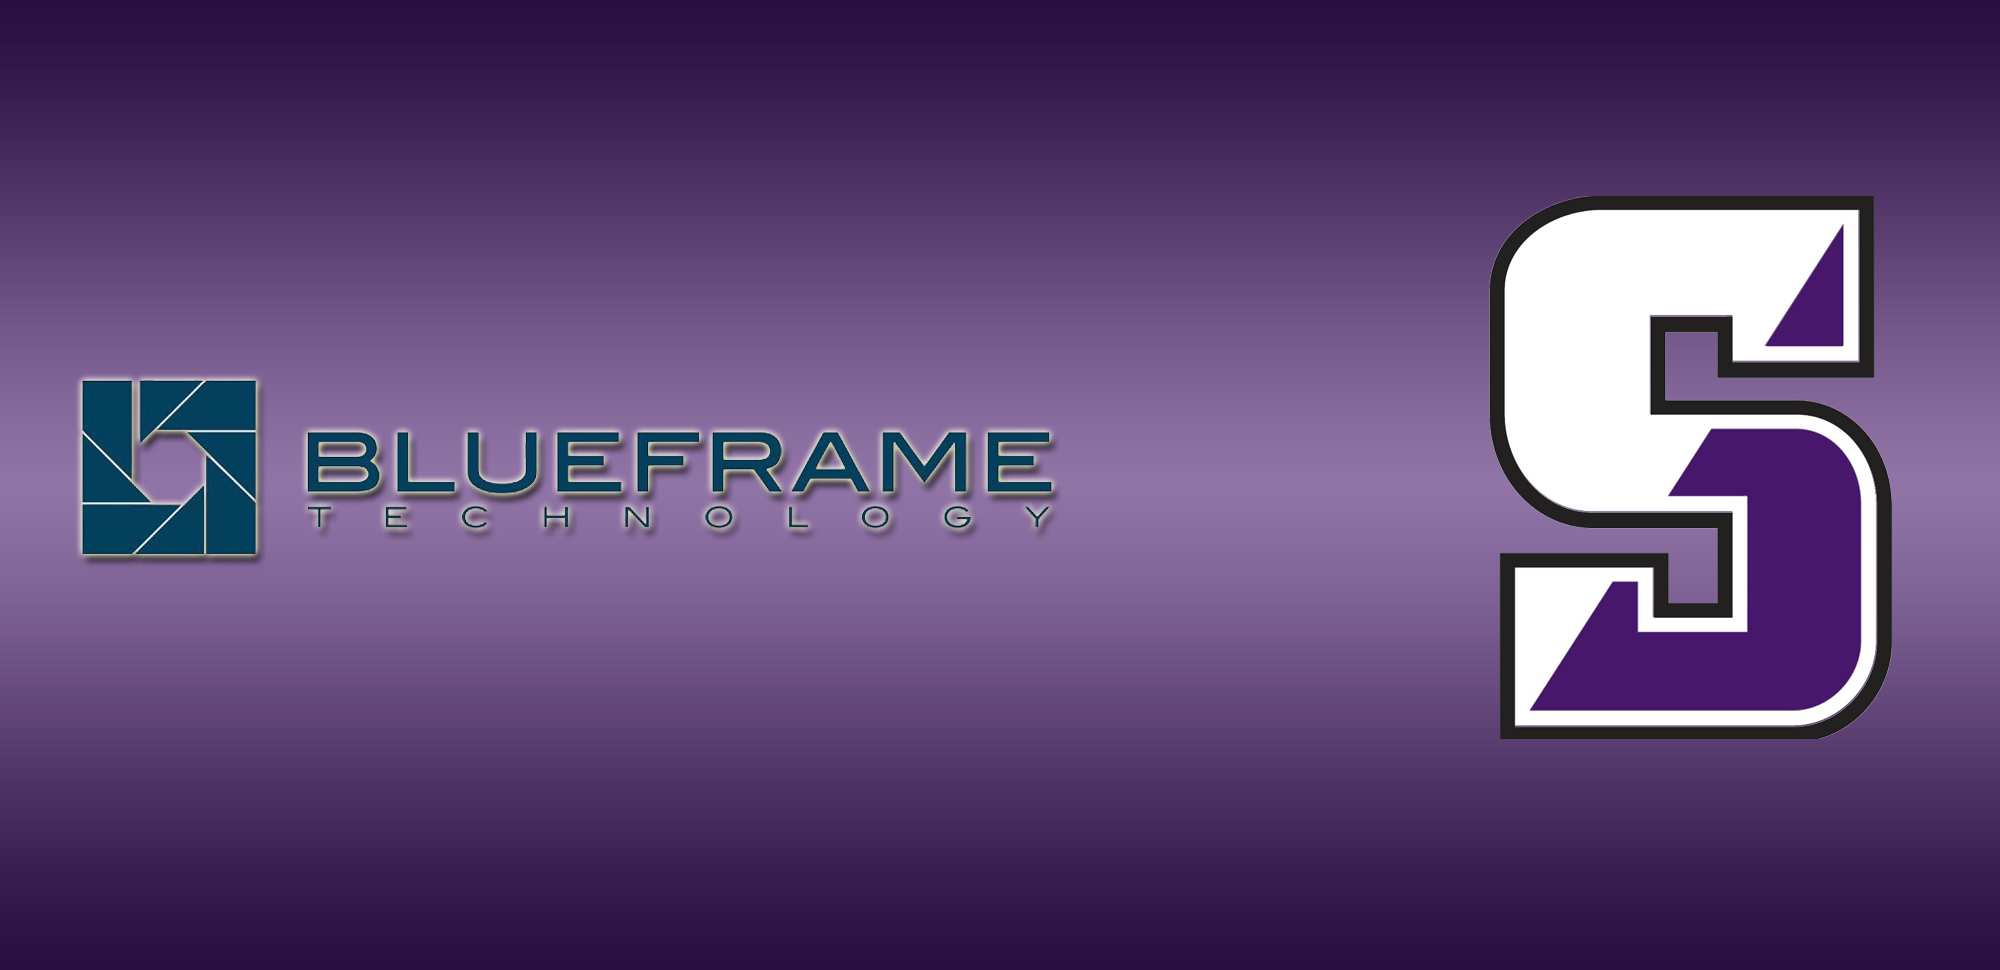 University of Scranton, Landmark Conference Announce Partnership with Blueframe Technologies